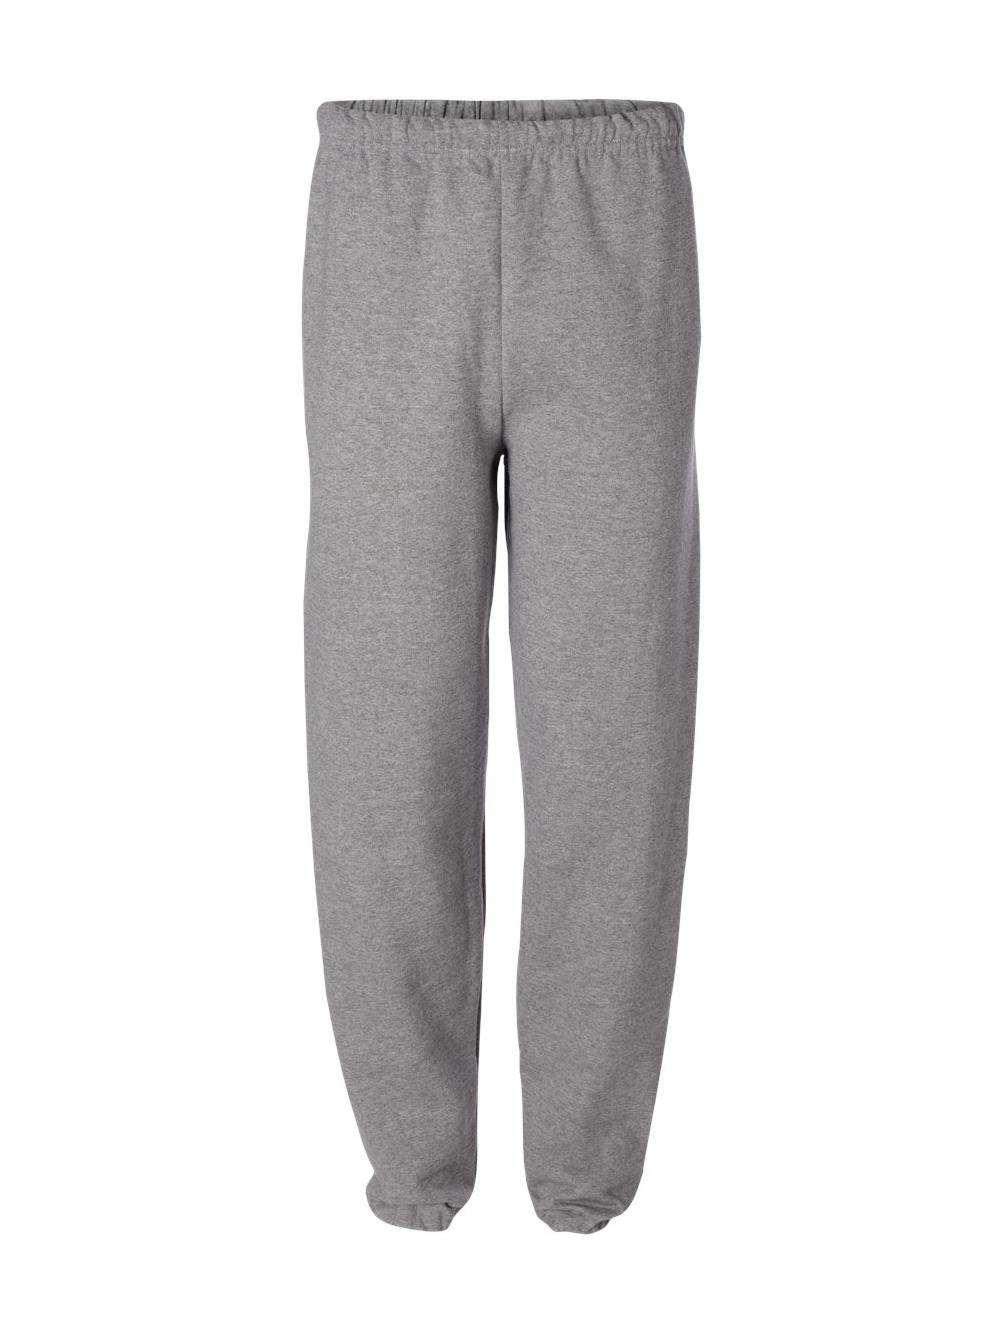 Jerzees Fleece NuBlend Sweatpants 973MR